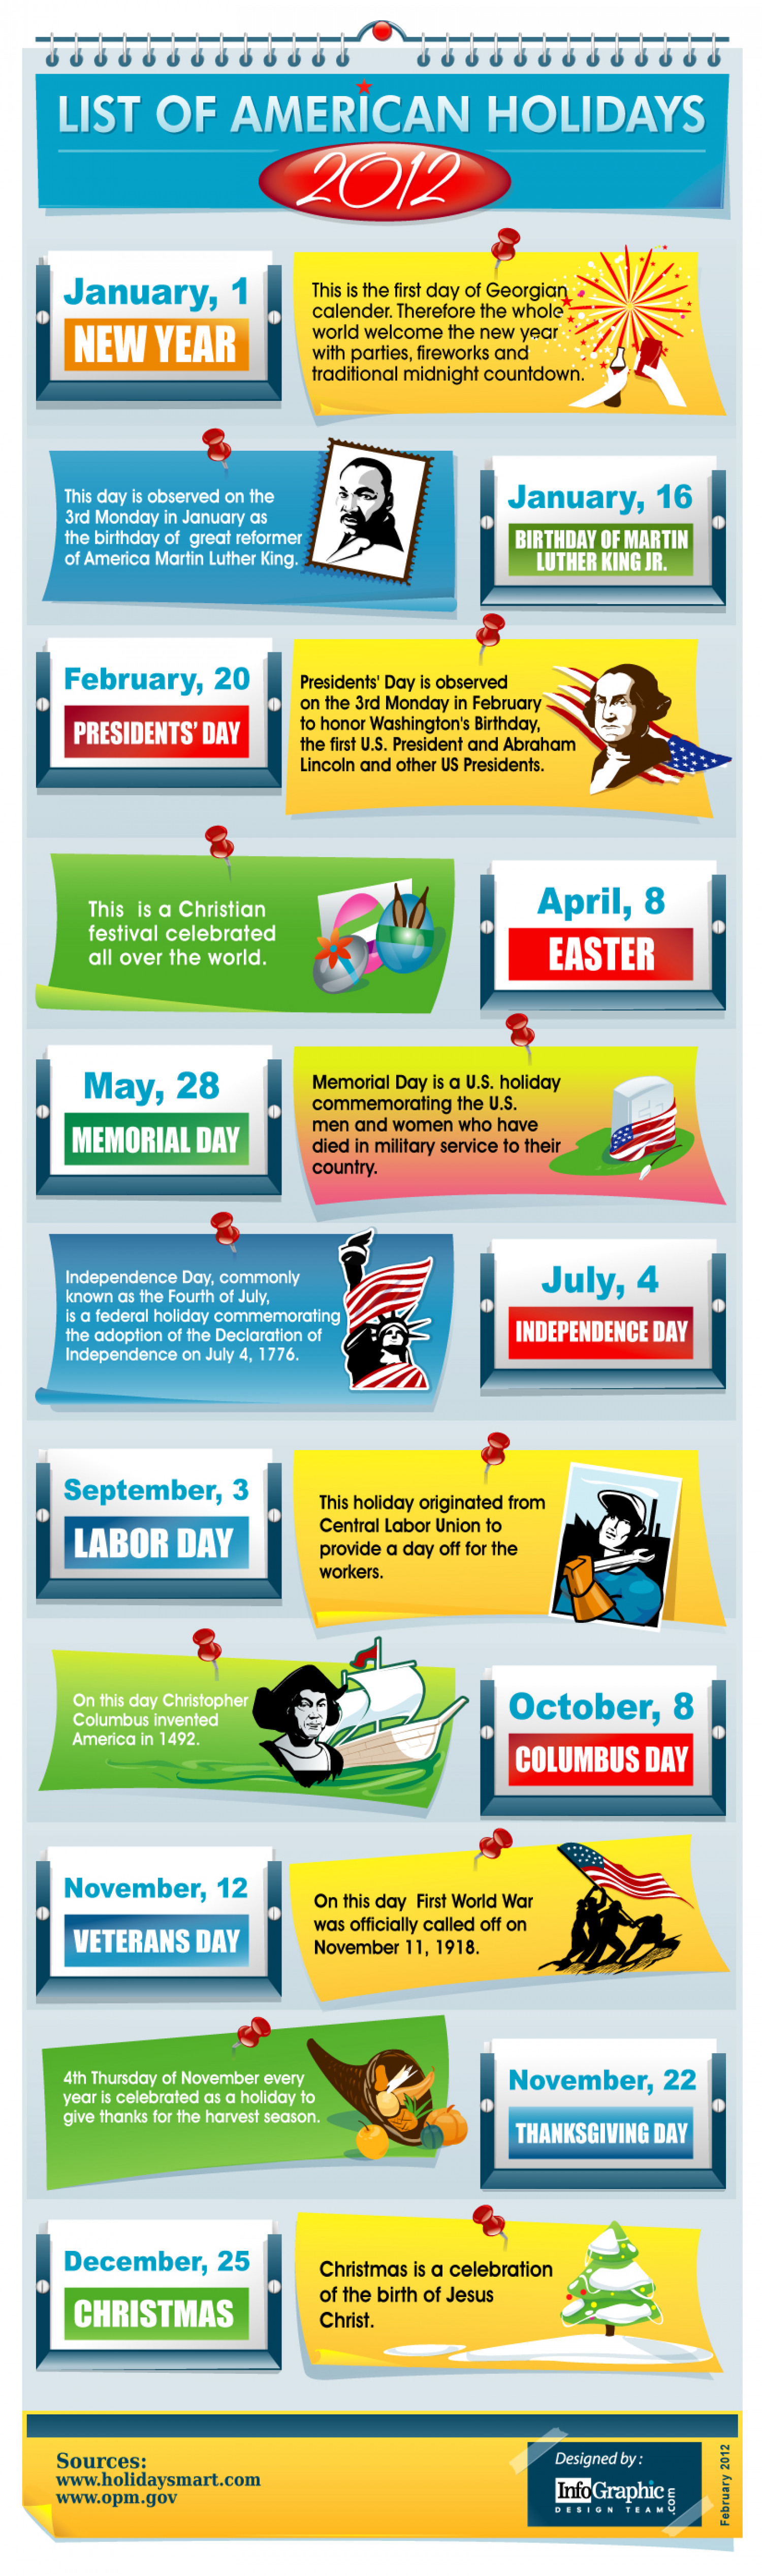 List Of American Holidays -2012 Infographic